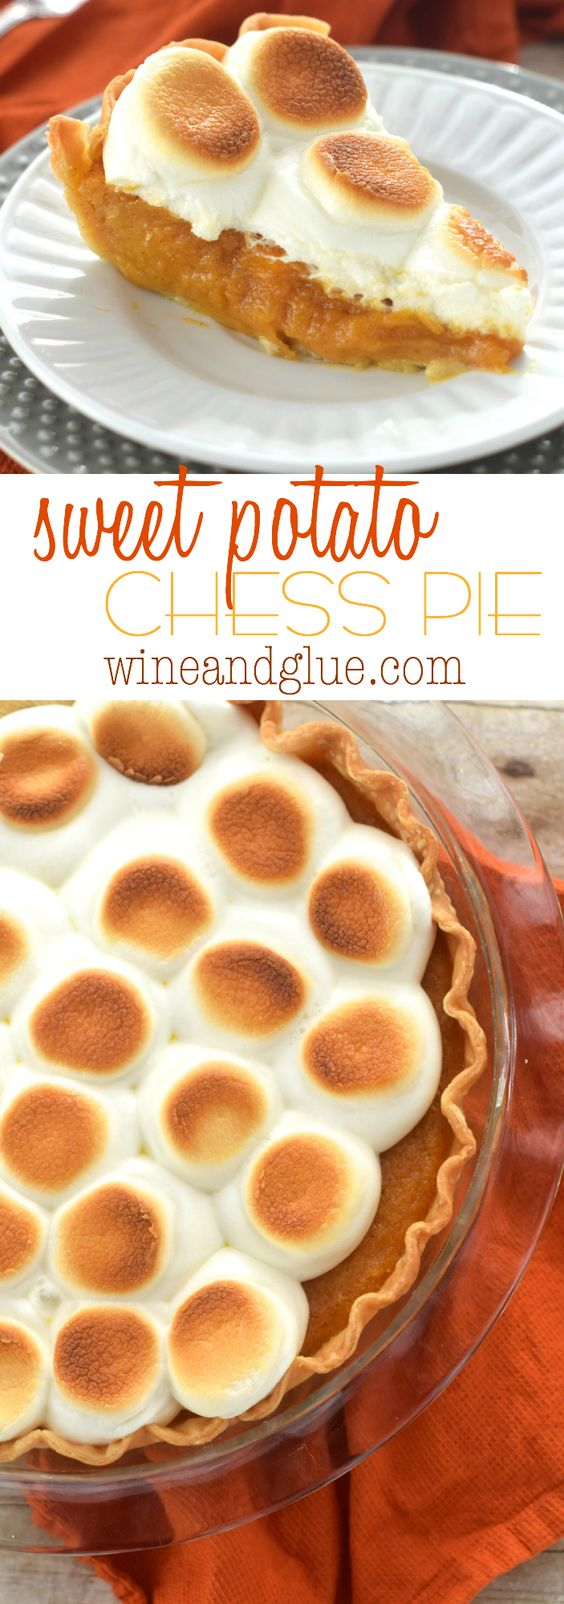 Sweet Potato Chess Pie Thanksgiving Dessert Recipe | Wine & Glue - The BEST Classic, Improved and Traditional Thanksgiving Dinner Menu Favorites Recipes - Main Dishes, Side Dishes, Appetizers, Salads, Yummy Desserts and more!